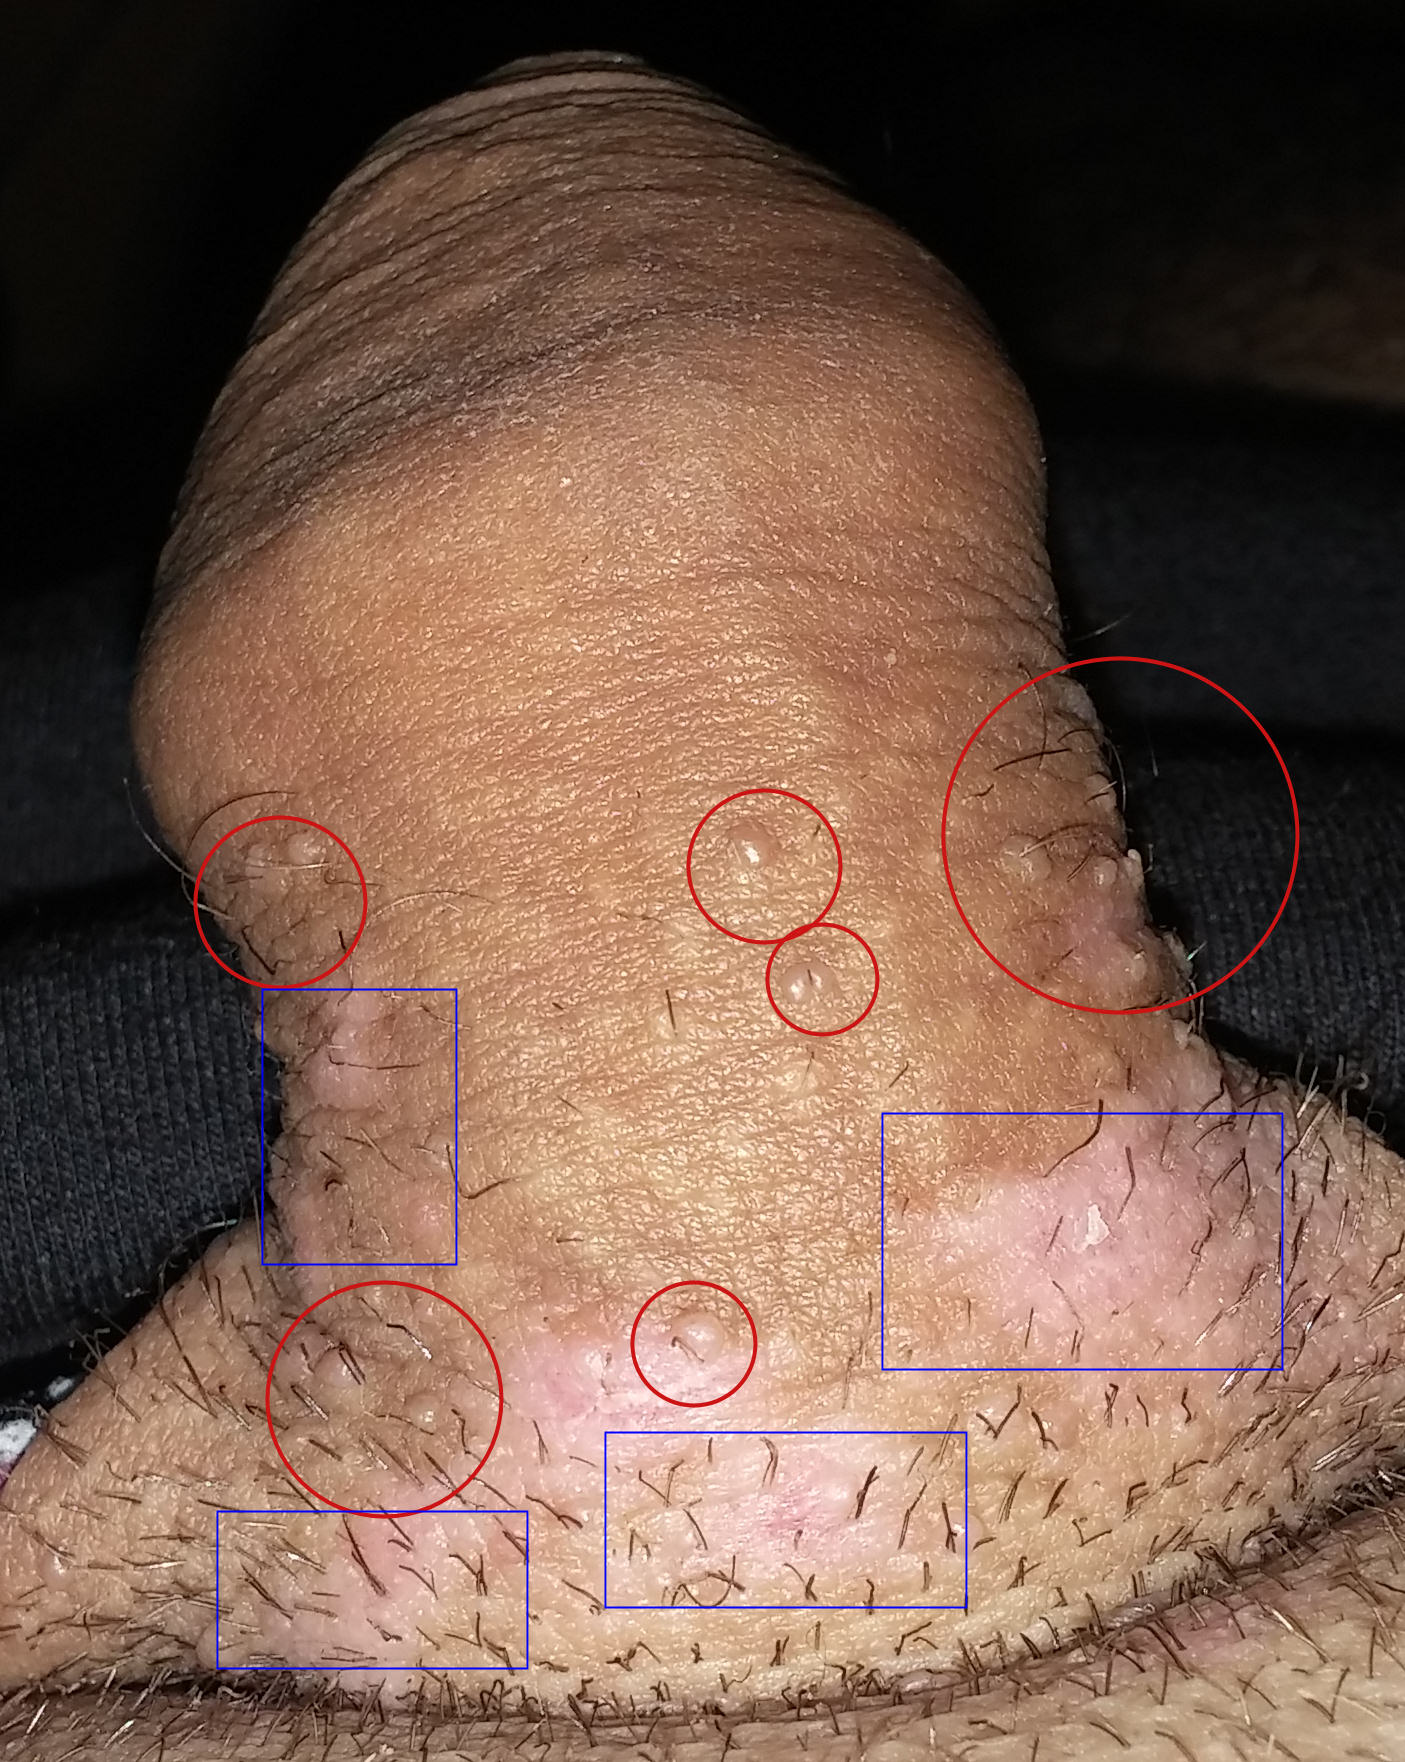 remede papillomavirus homme hpv warts mouth